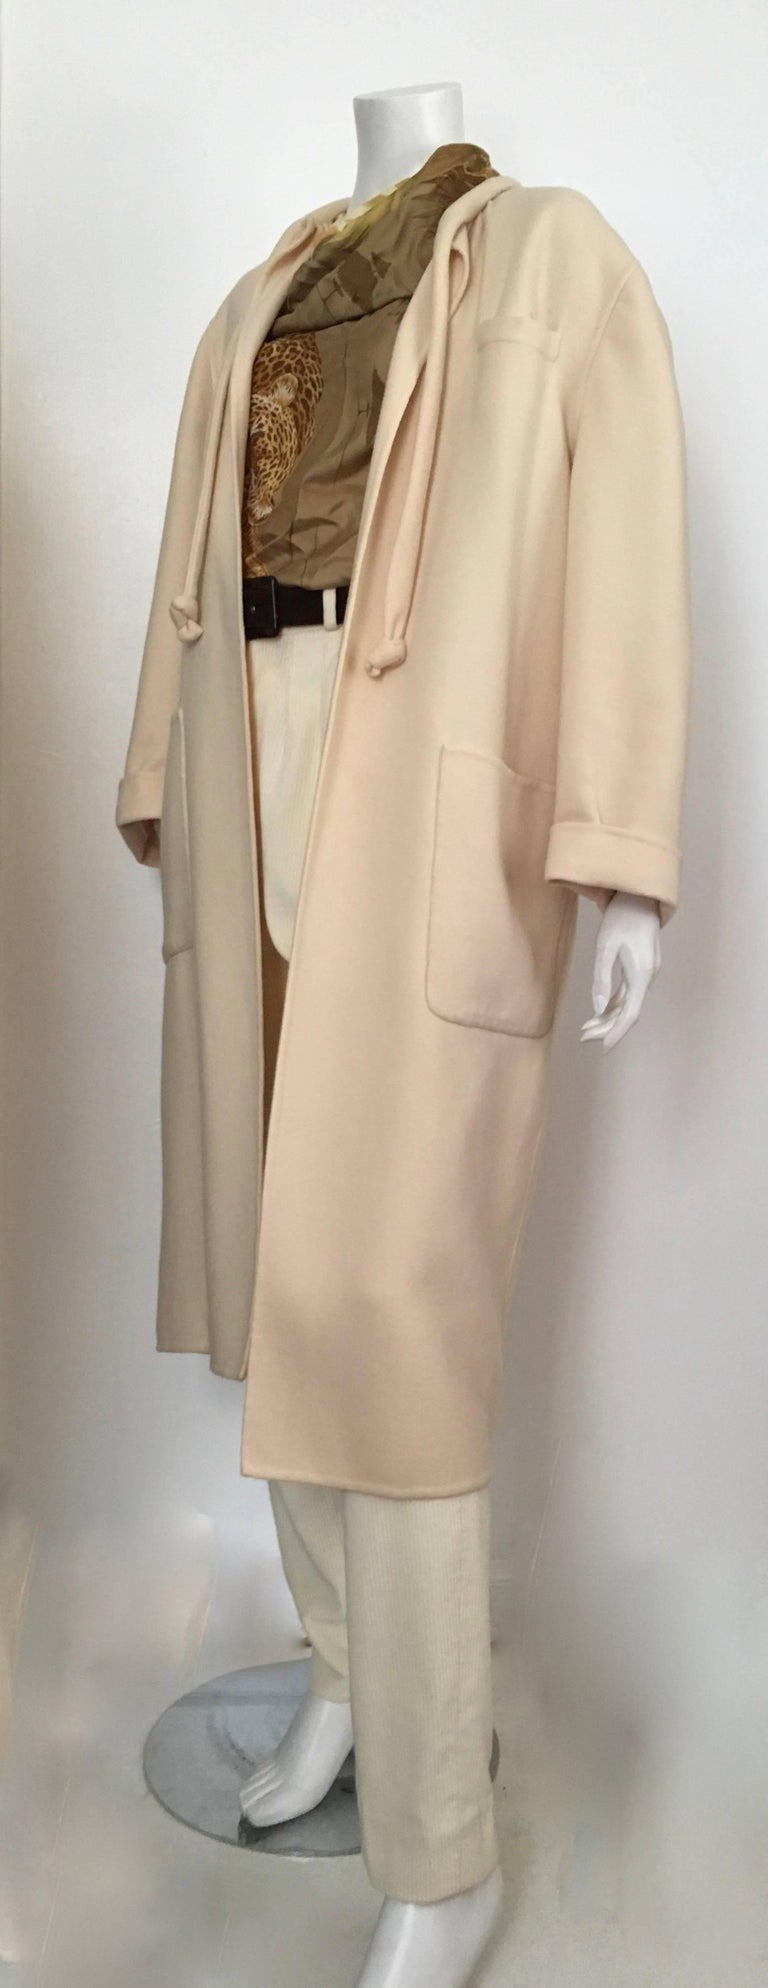 Salvatore Ferragamo Cream Wool Cocoon Coat with Pockets Size 10 For Sale 2